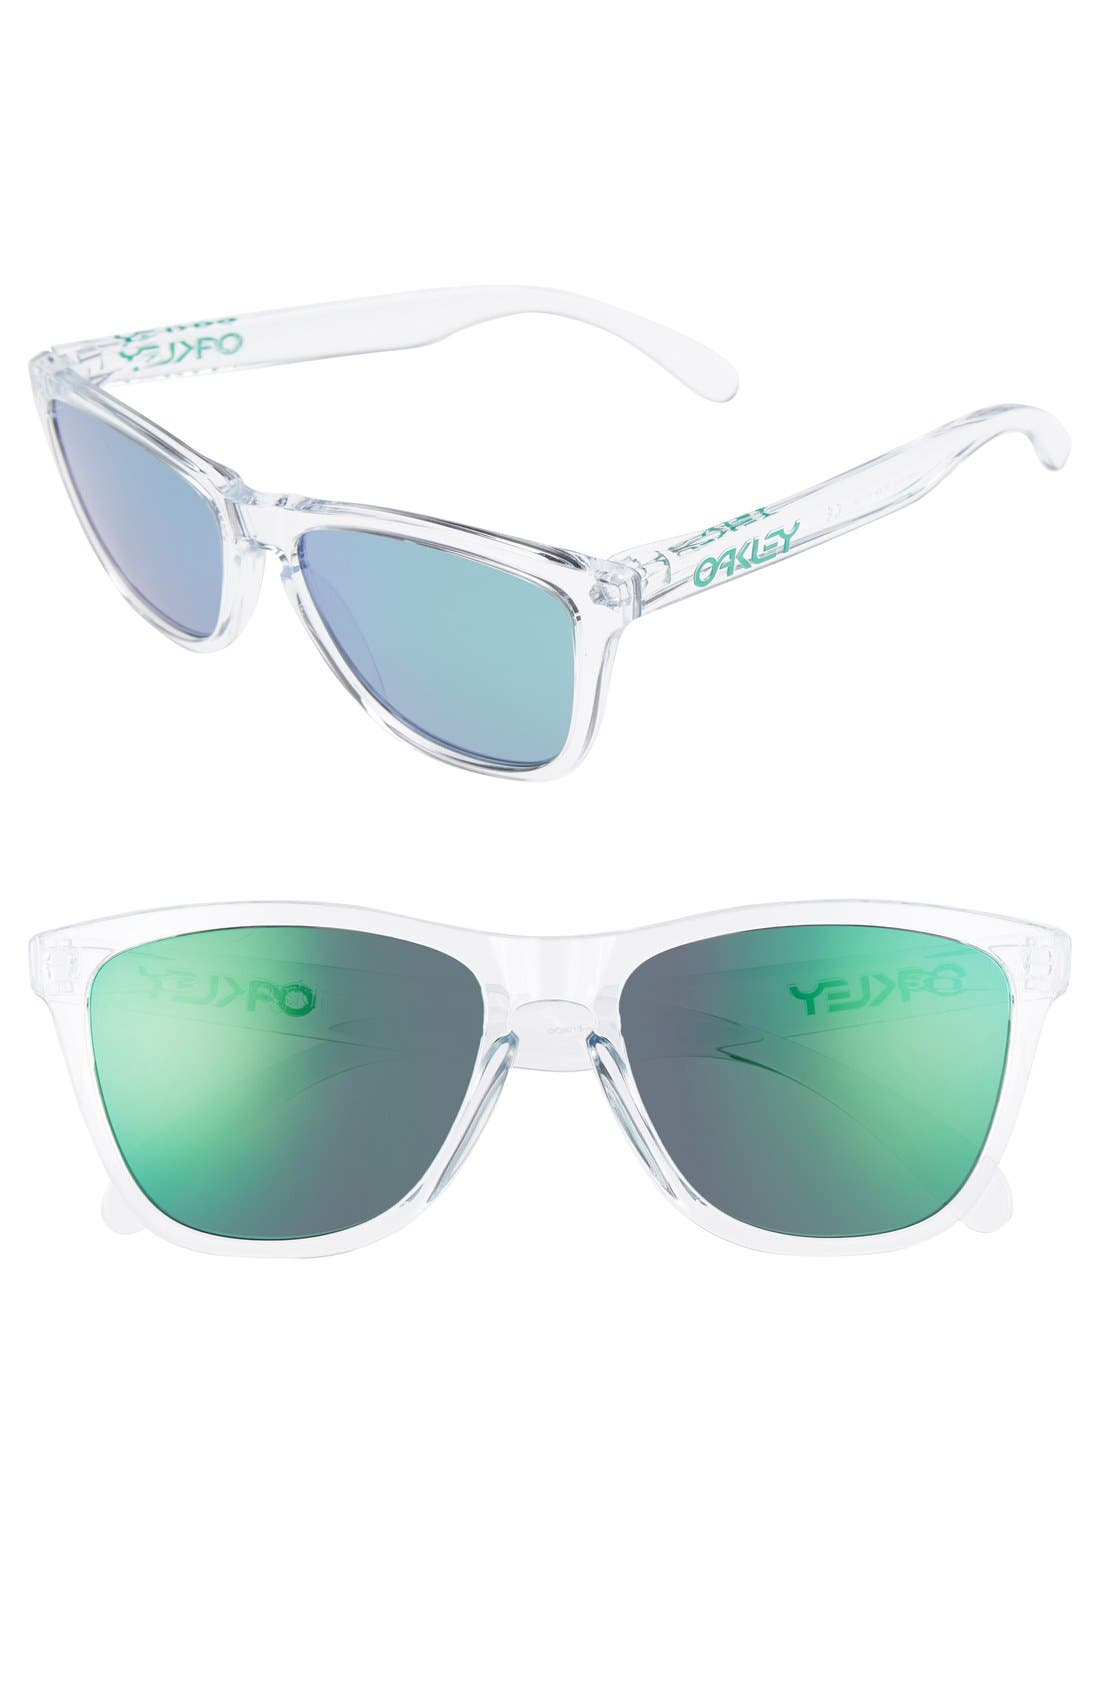 Frogskins<sup>®</sup> 55mm Sunglasses,                             Main thumbnail 1, color,                             100